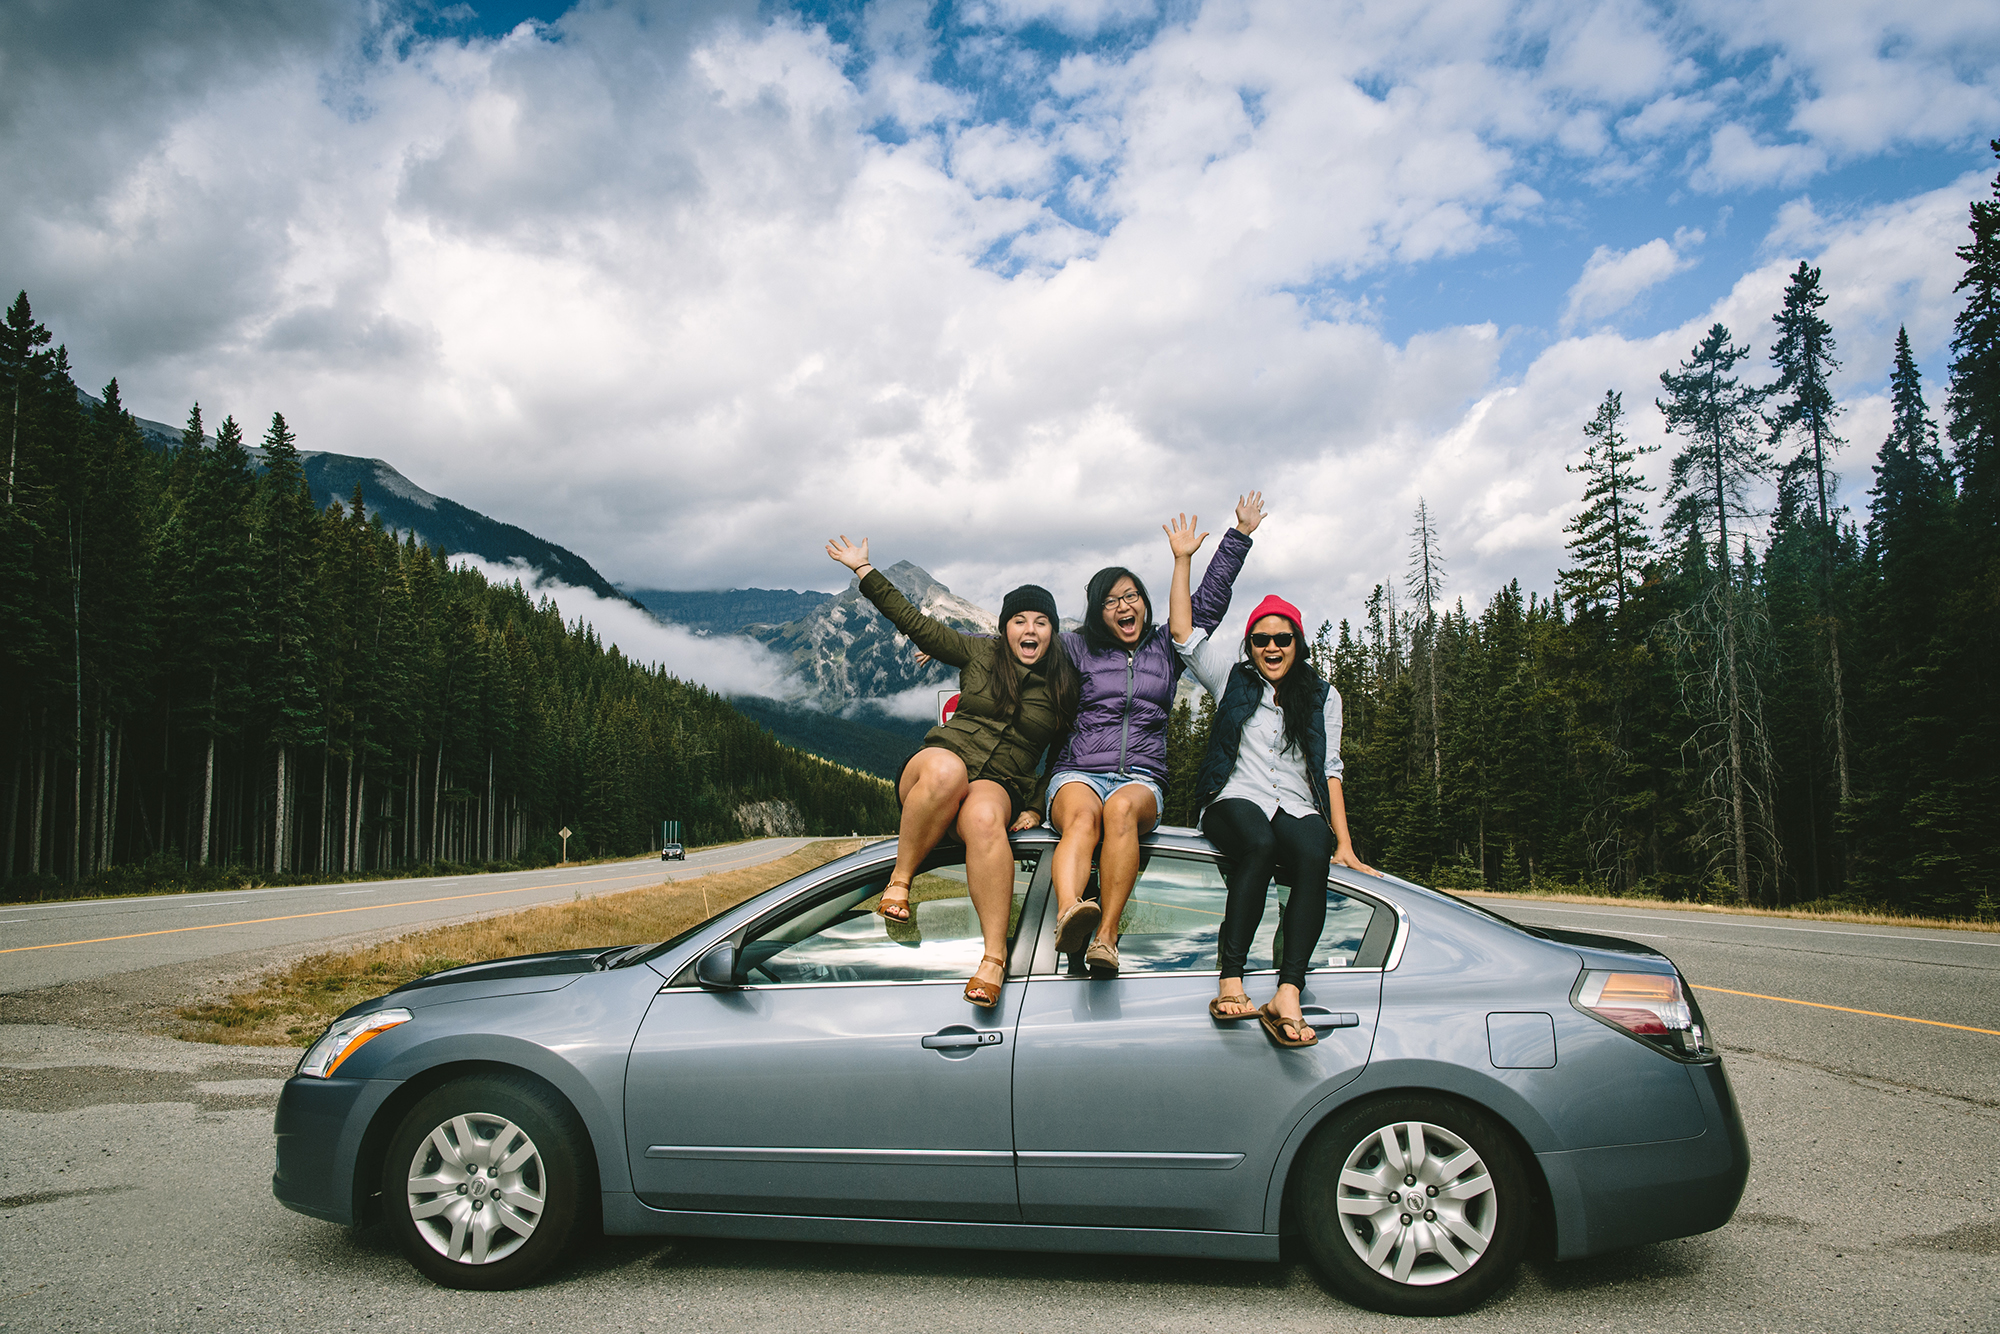 J, D, and I in Banff for Paul's workshop, the trip that forever changed our lives, photo by Jenny Linquist, August 2013